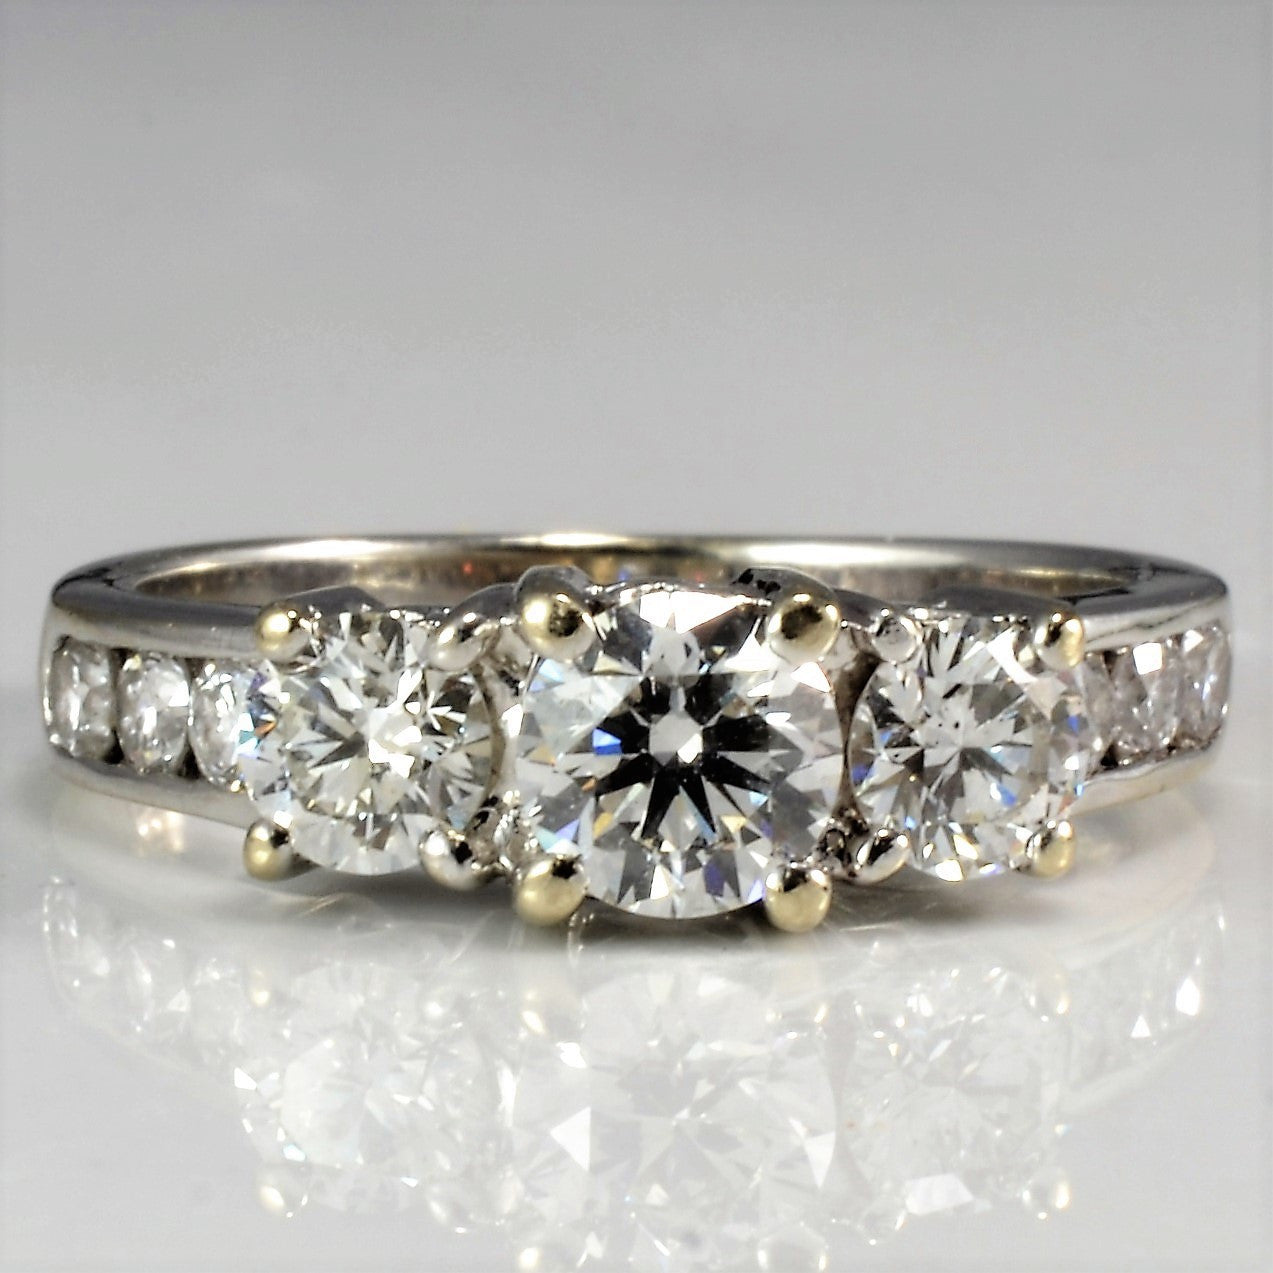 engagement gold collection ring detailed to video back select beautifully white most rings diamond platinum engraved